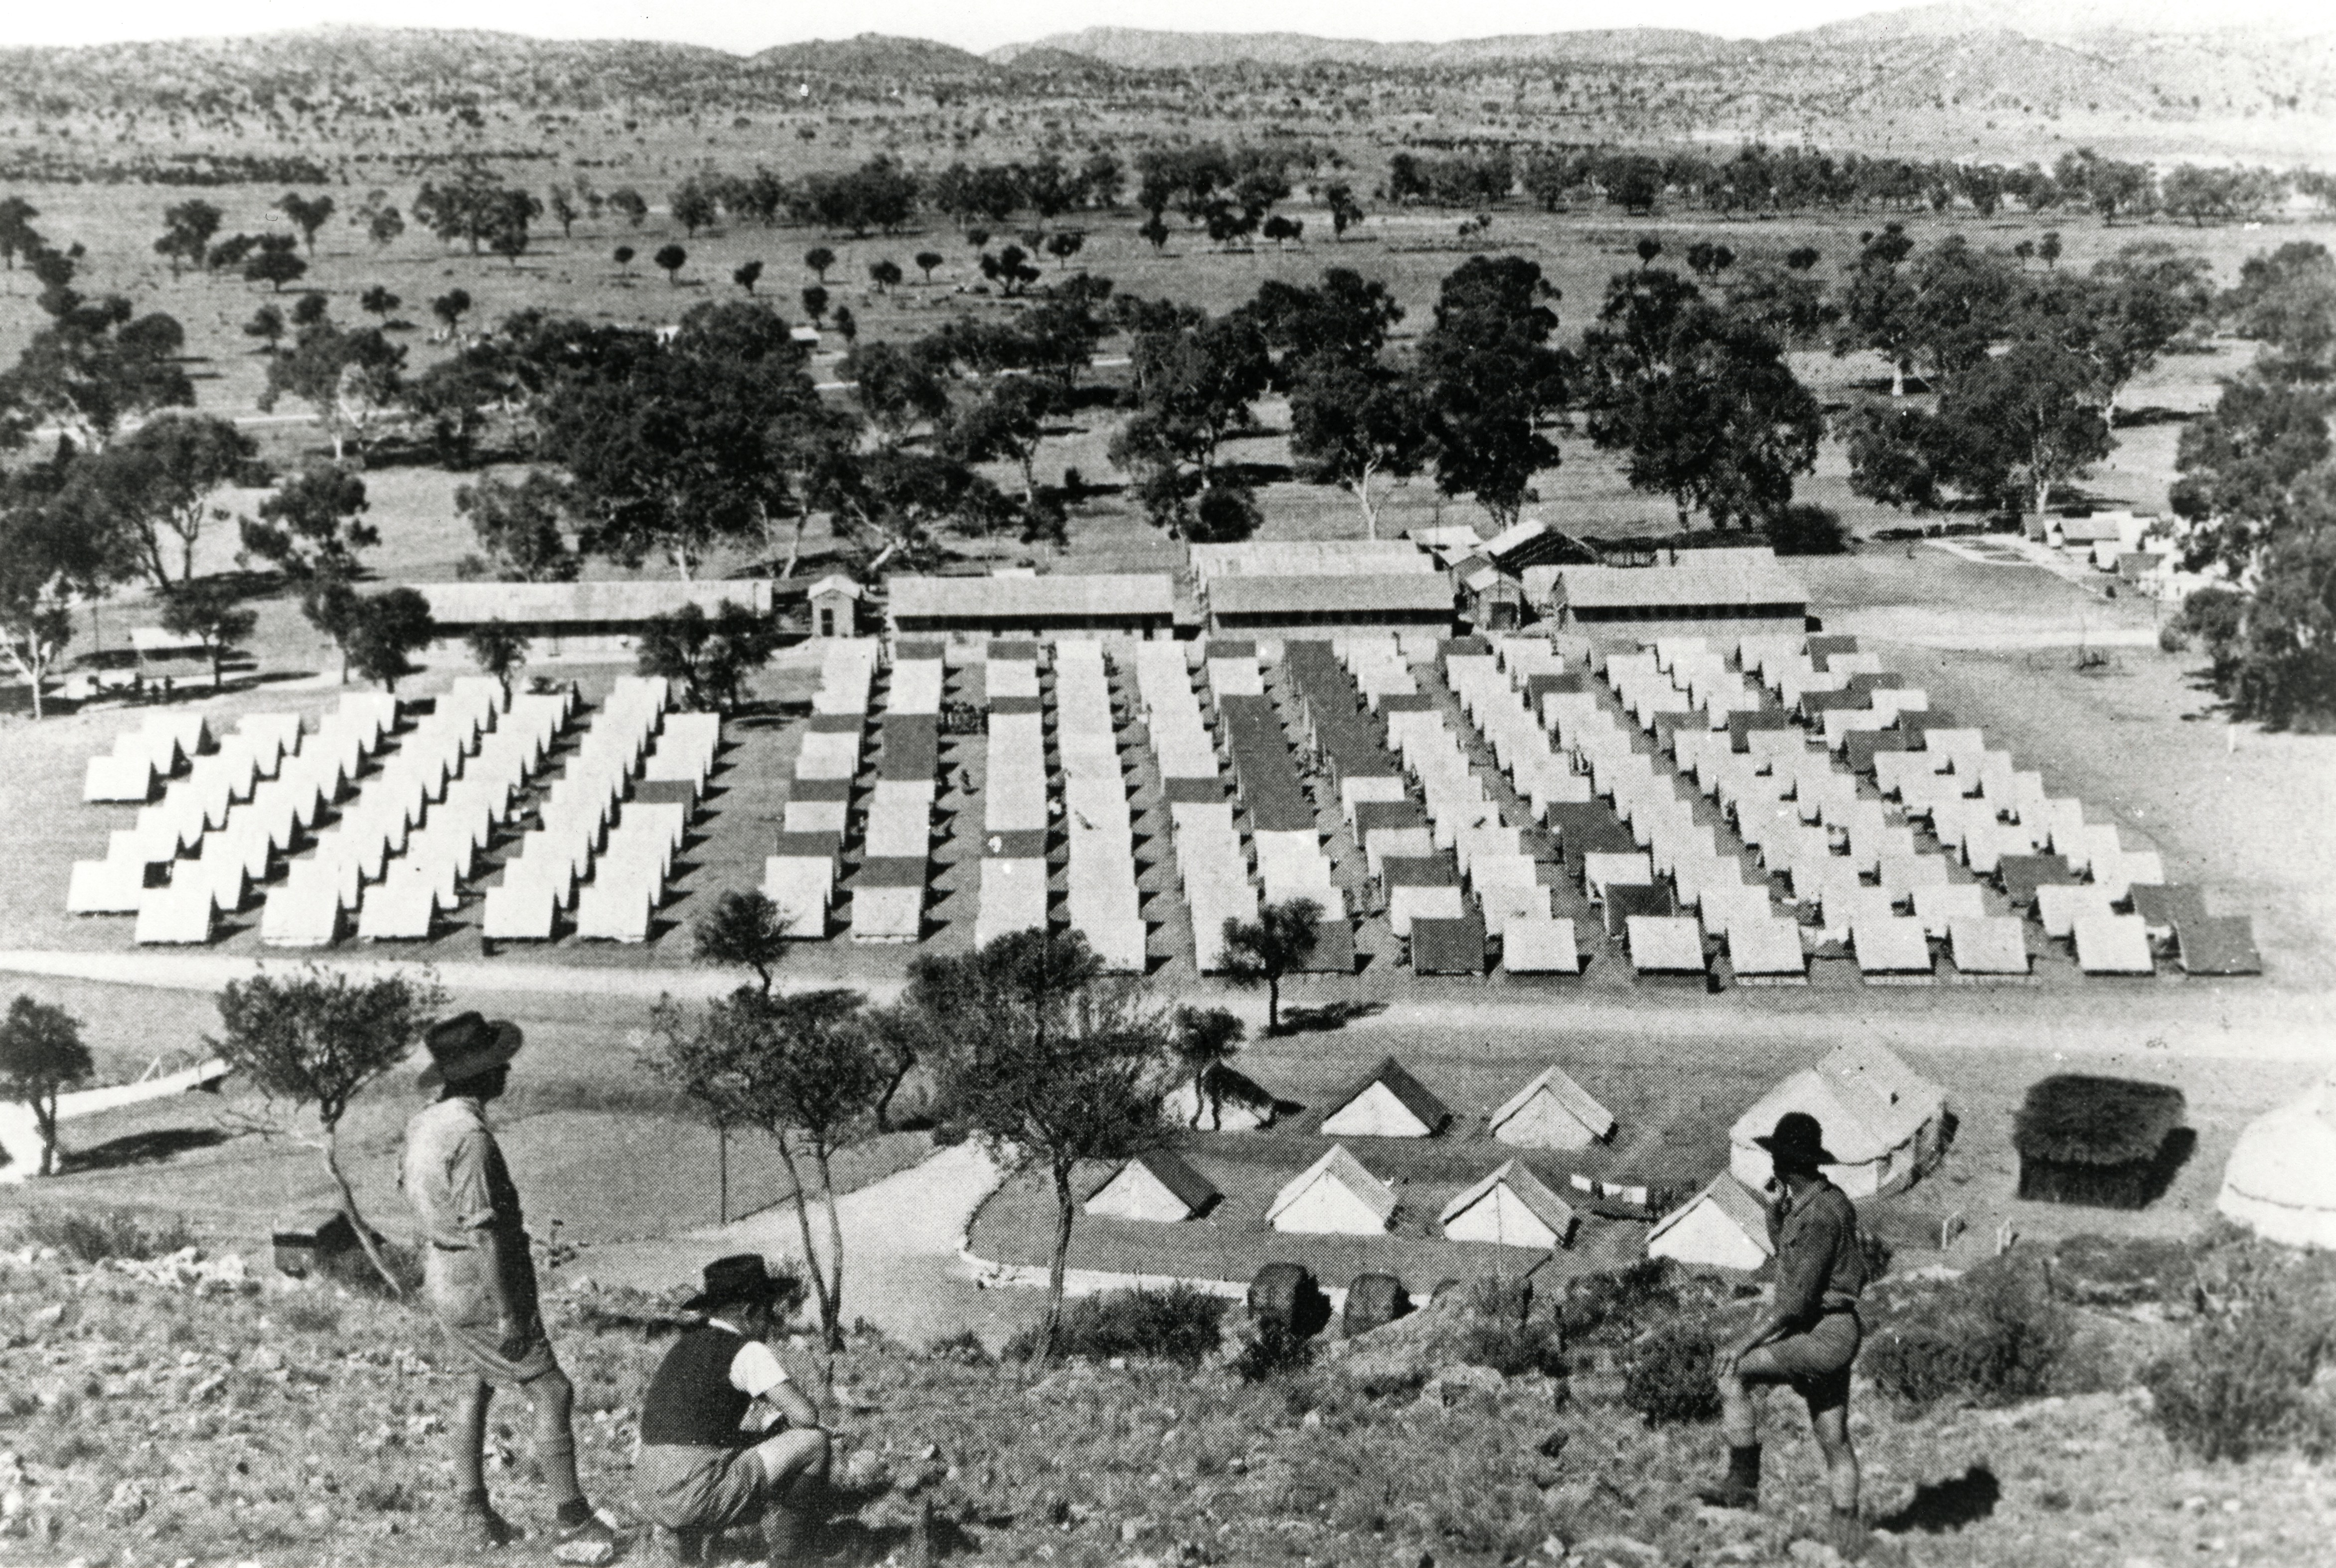 Army tents in Alice Springs